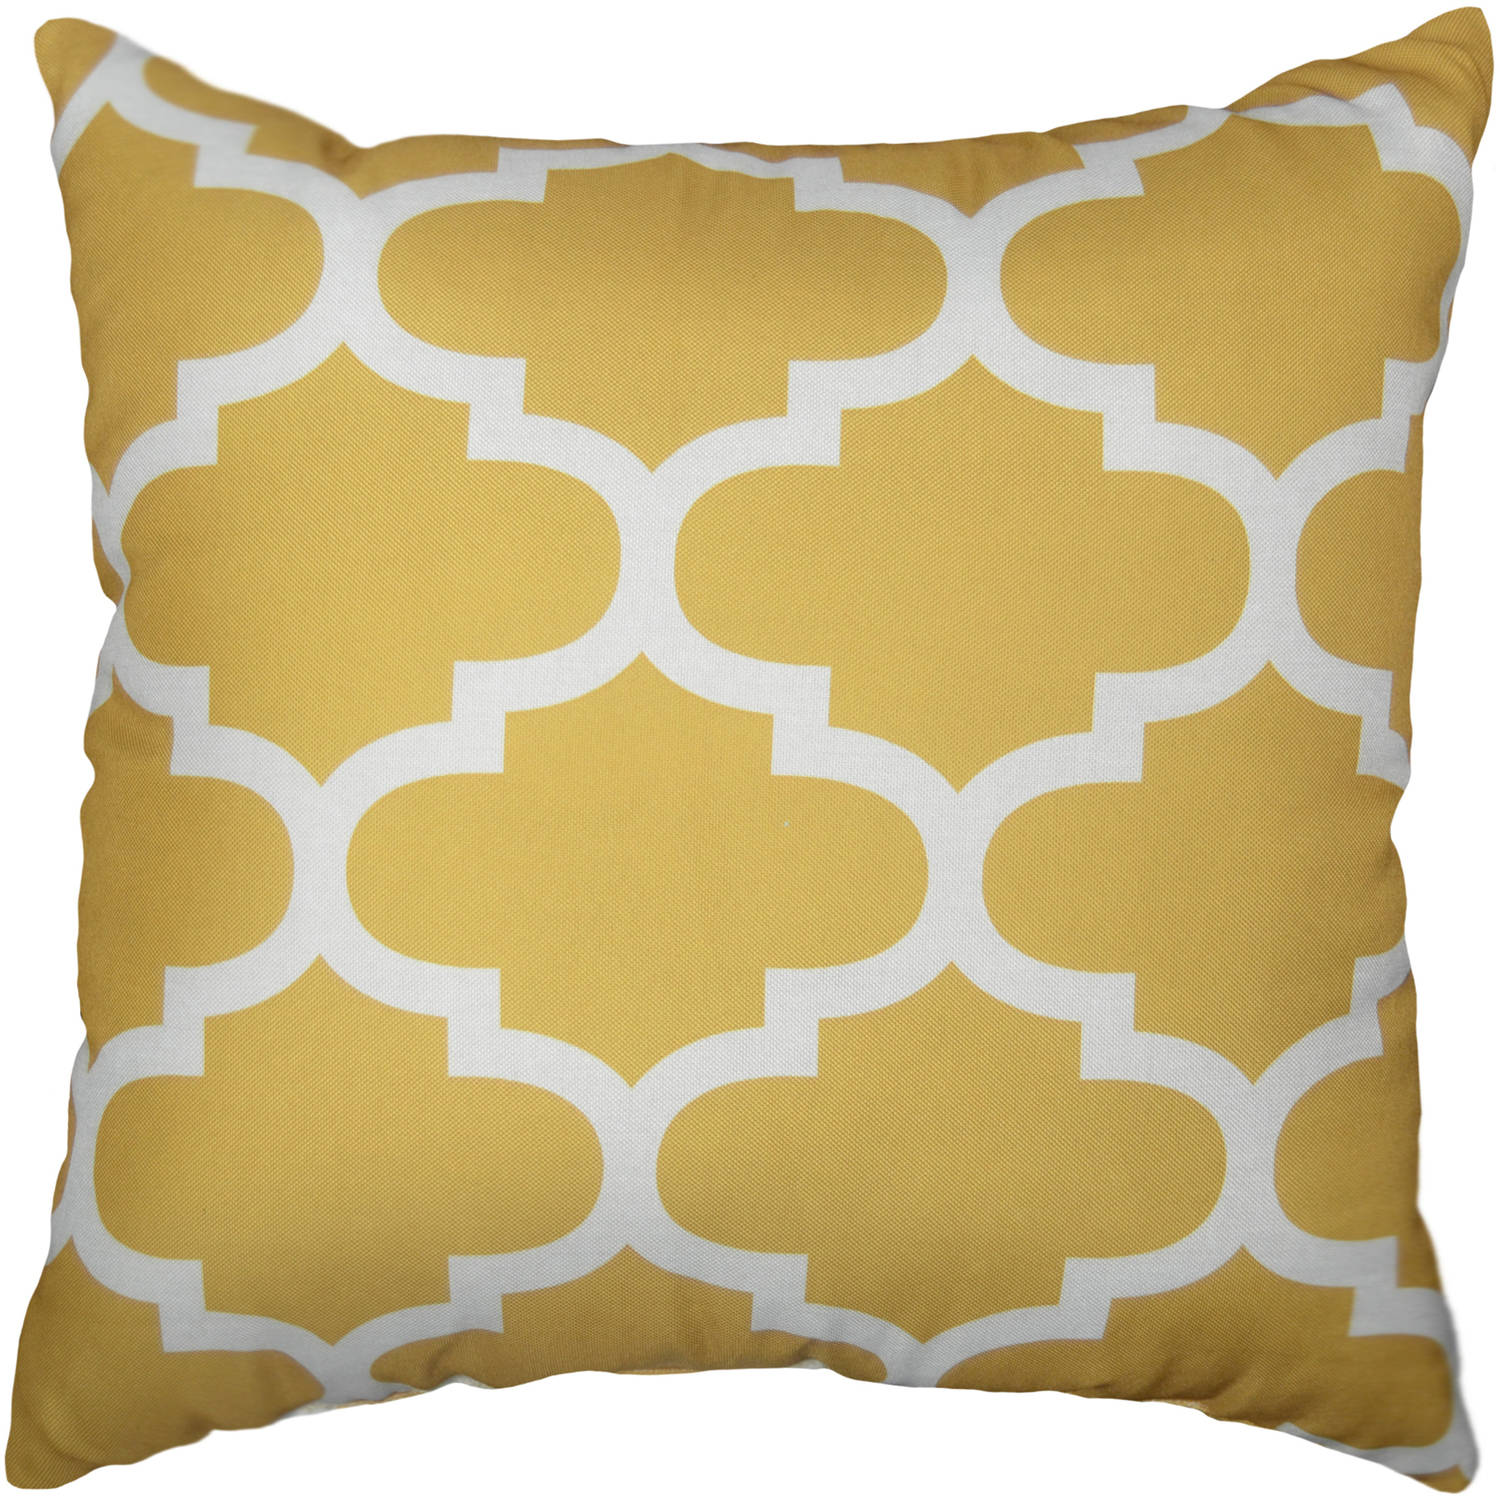 Decorative pillows with blue brown and yellow - Decorative Pillows With Blue Brown And Yellow 2